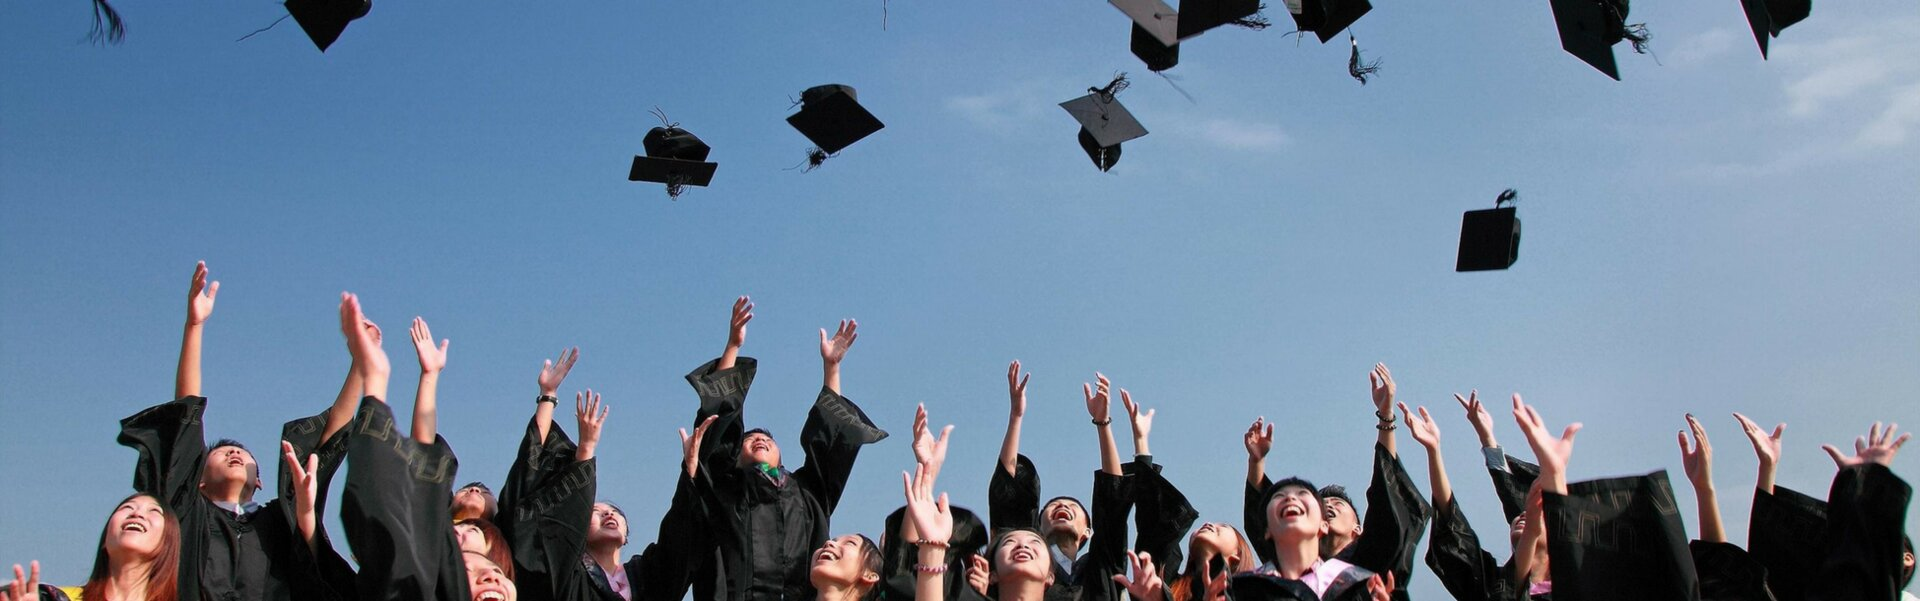 Is An Advanced Degree Worth It? The Key to Staying Motivated